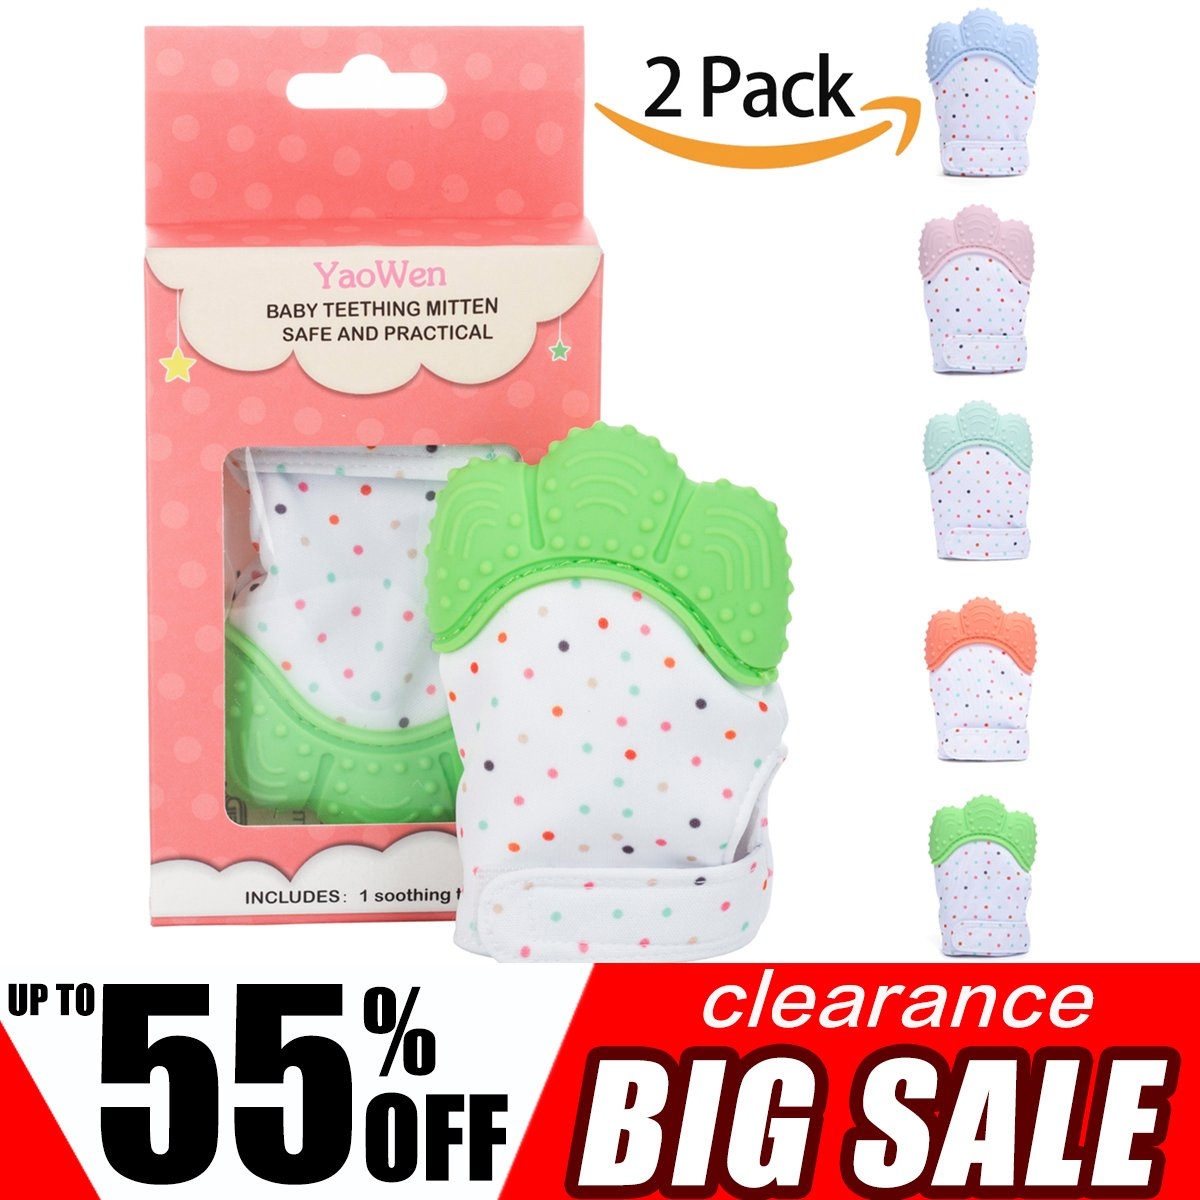 2Pack Baby Teething Mitten Set for Babies Self-Soothing Pain Relif Teething Glove Safe Food Grade Teething Mitt for 3-12 Months Boys (Green Color) Yaowen